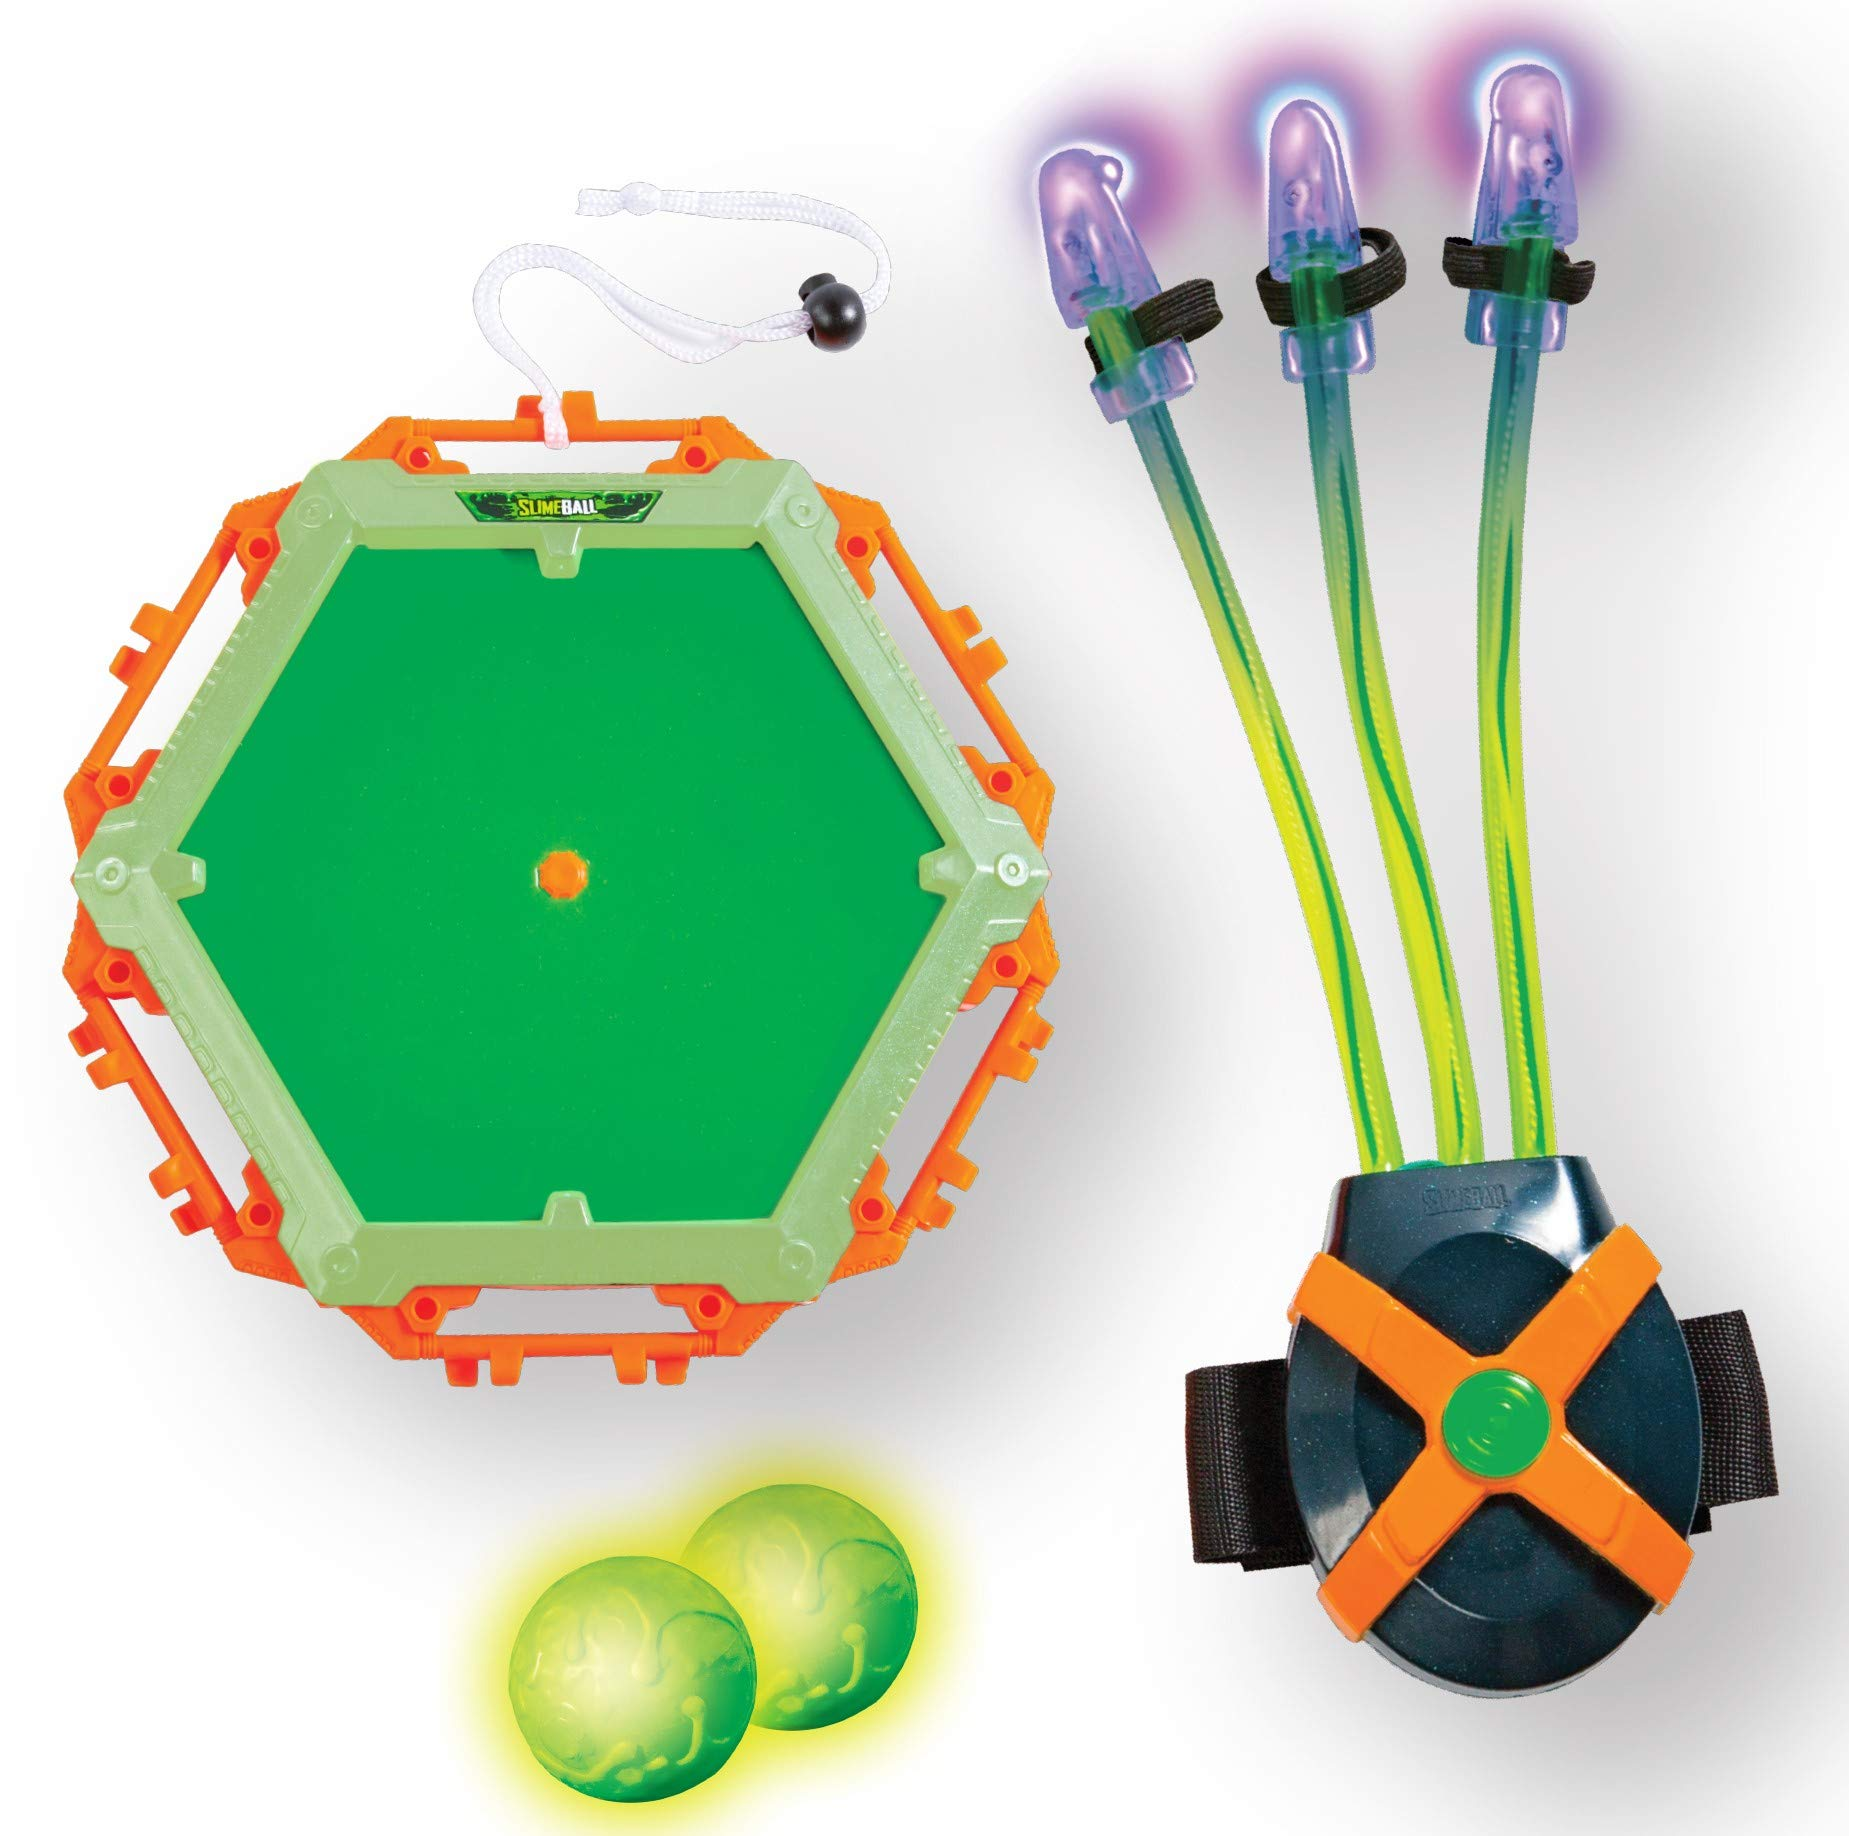 Diggin Slimeball Light Claw & Glow Target - Wearable Blacklight Glove with Sticky Slime Target & Glow Balls